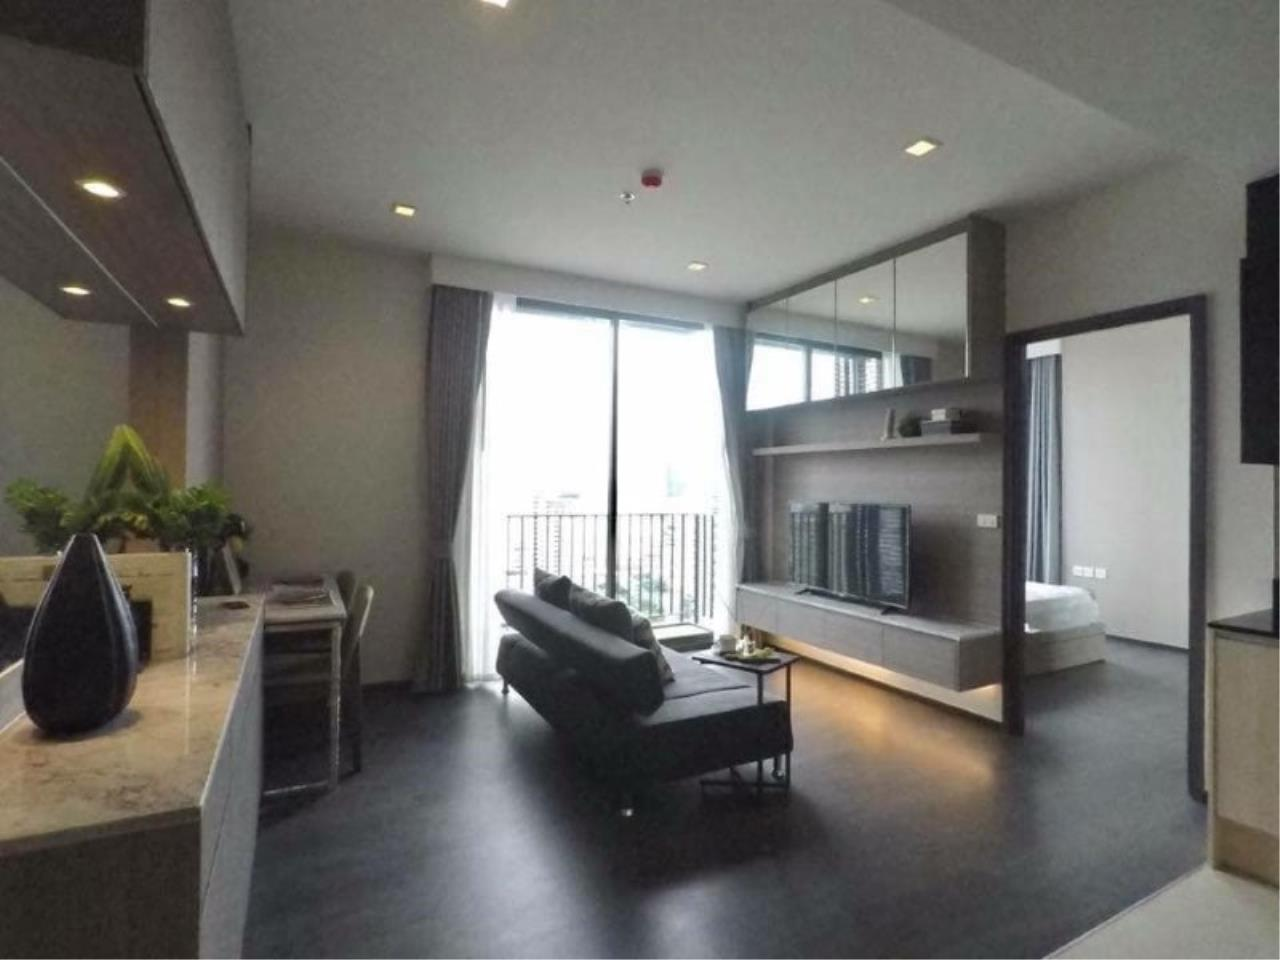 Century21 Skylux Agency's Edge Sukhumvit 23 / Condo For Rent / 1 Bedroom / 42 SQM / BTS Asok / Bangkok 4